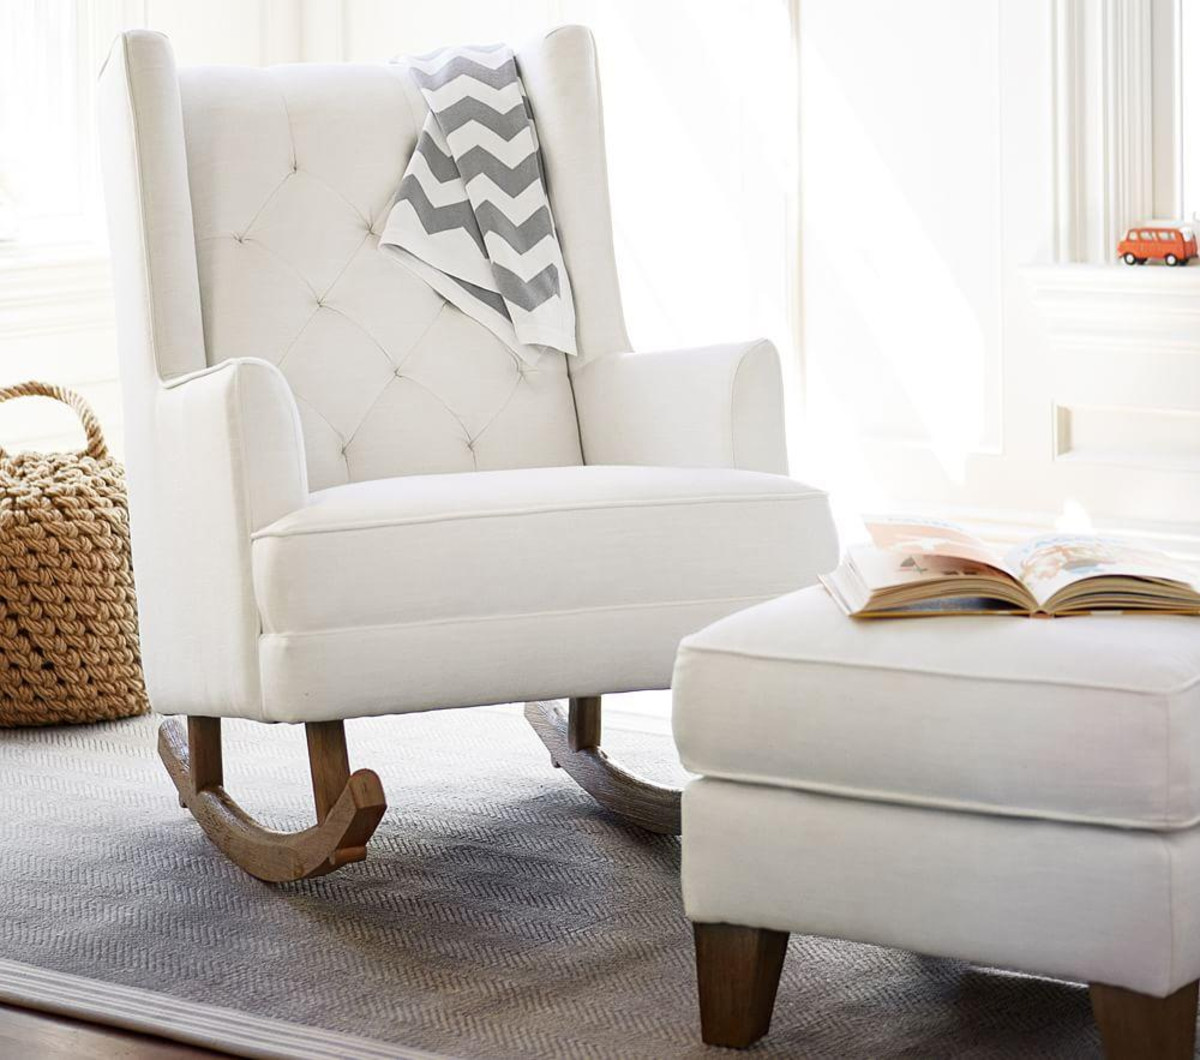 Image of: Modern Oversized Rocking Chair